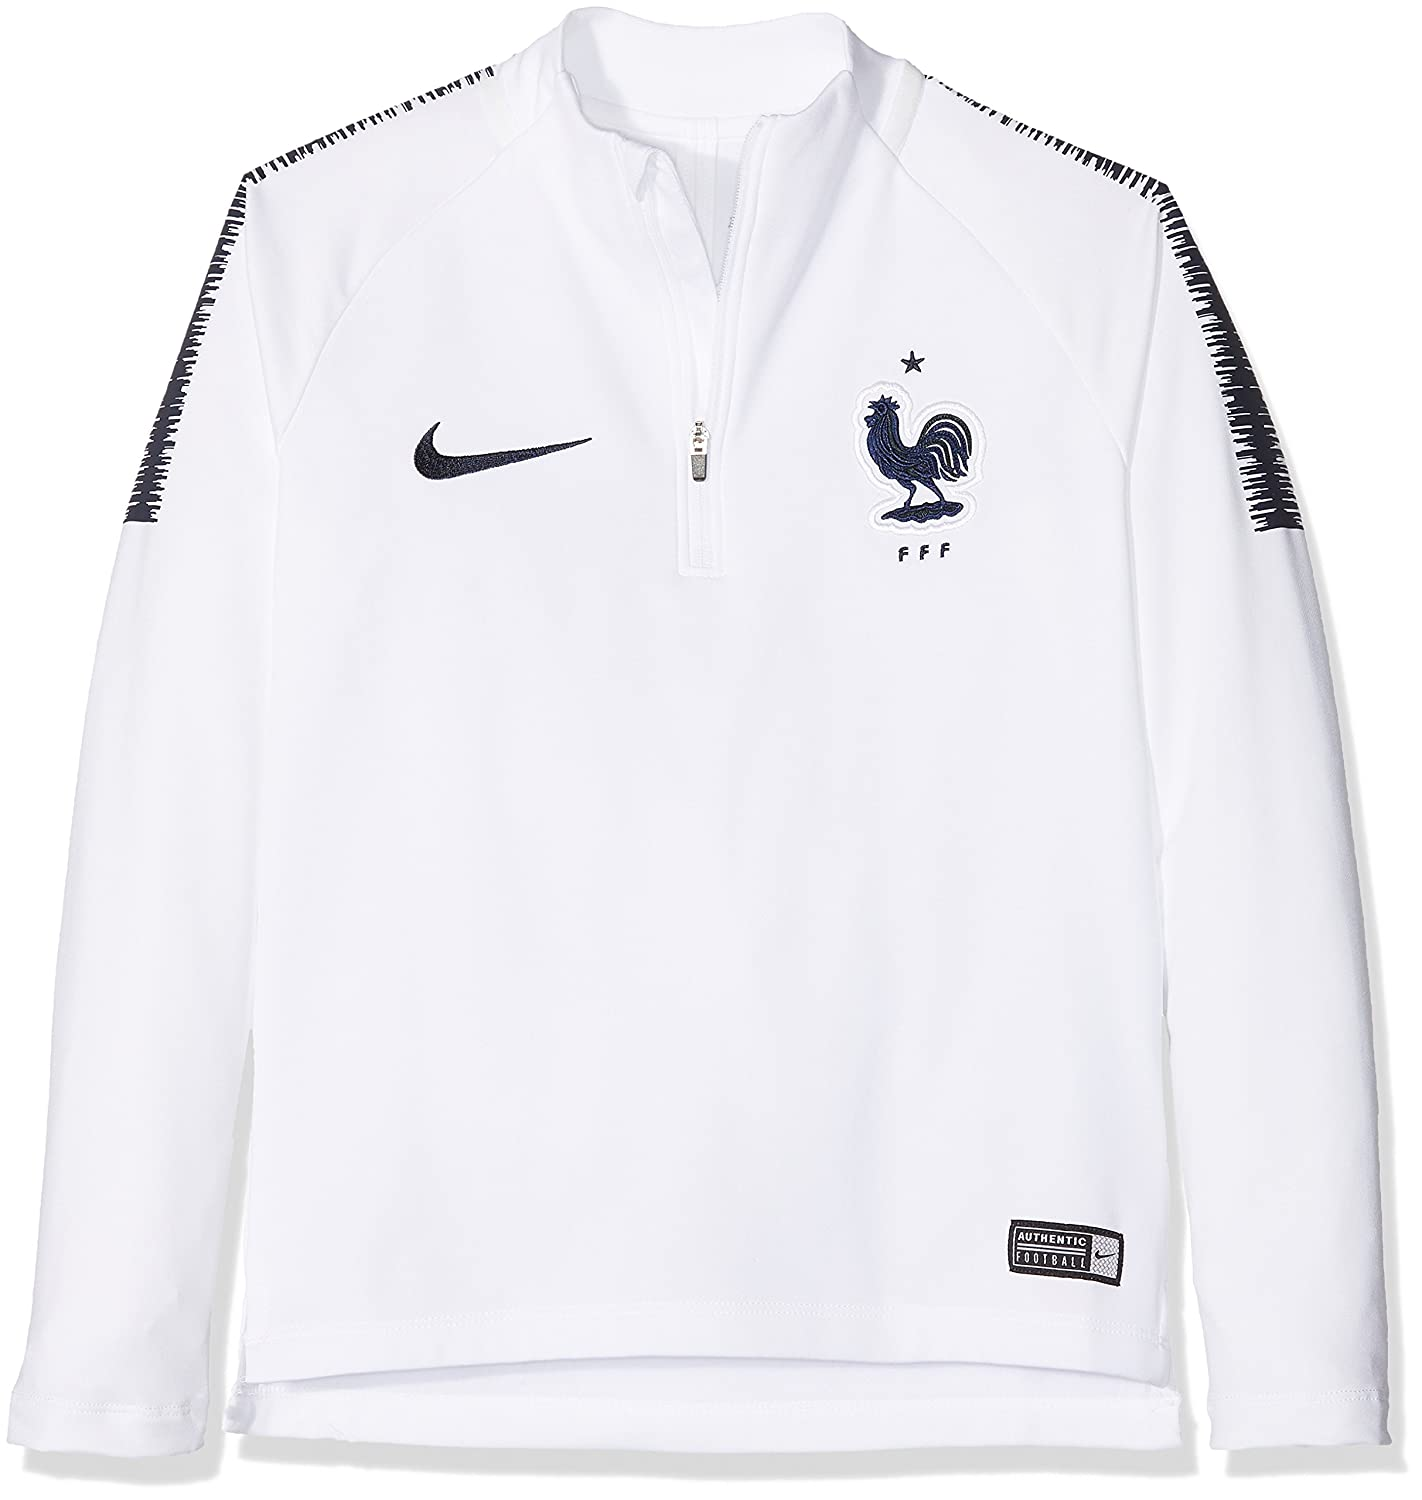 70368f47ab4 Amazon.com   Nike 2018-2019 France Training Drill Top (White) - Kids    Sports   Outdoors